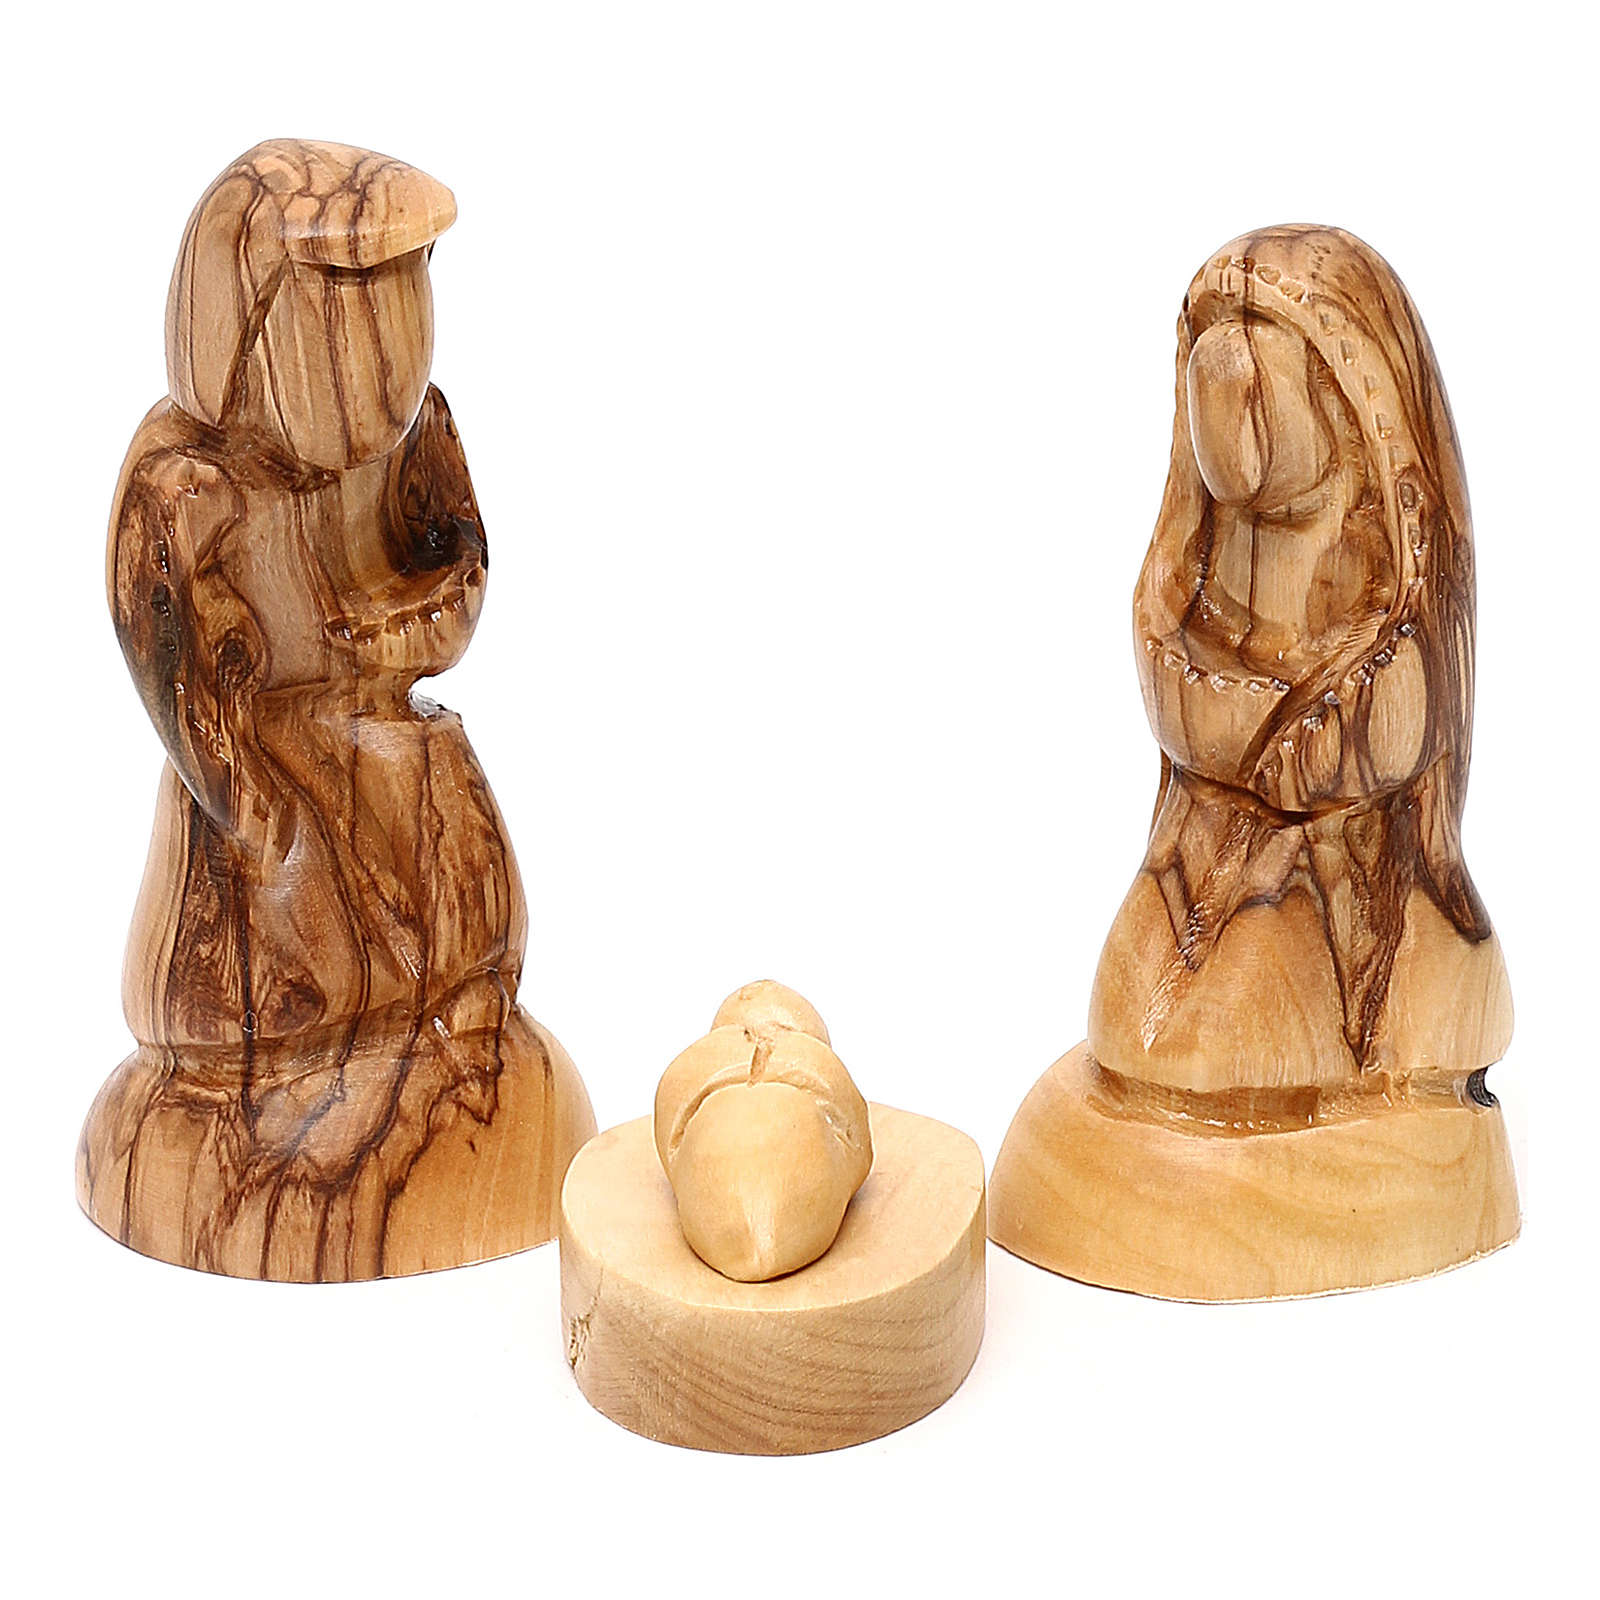 Nativity scene with cave in Bethlehem olive wood 20x30x20 cm 4